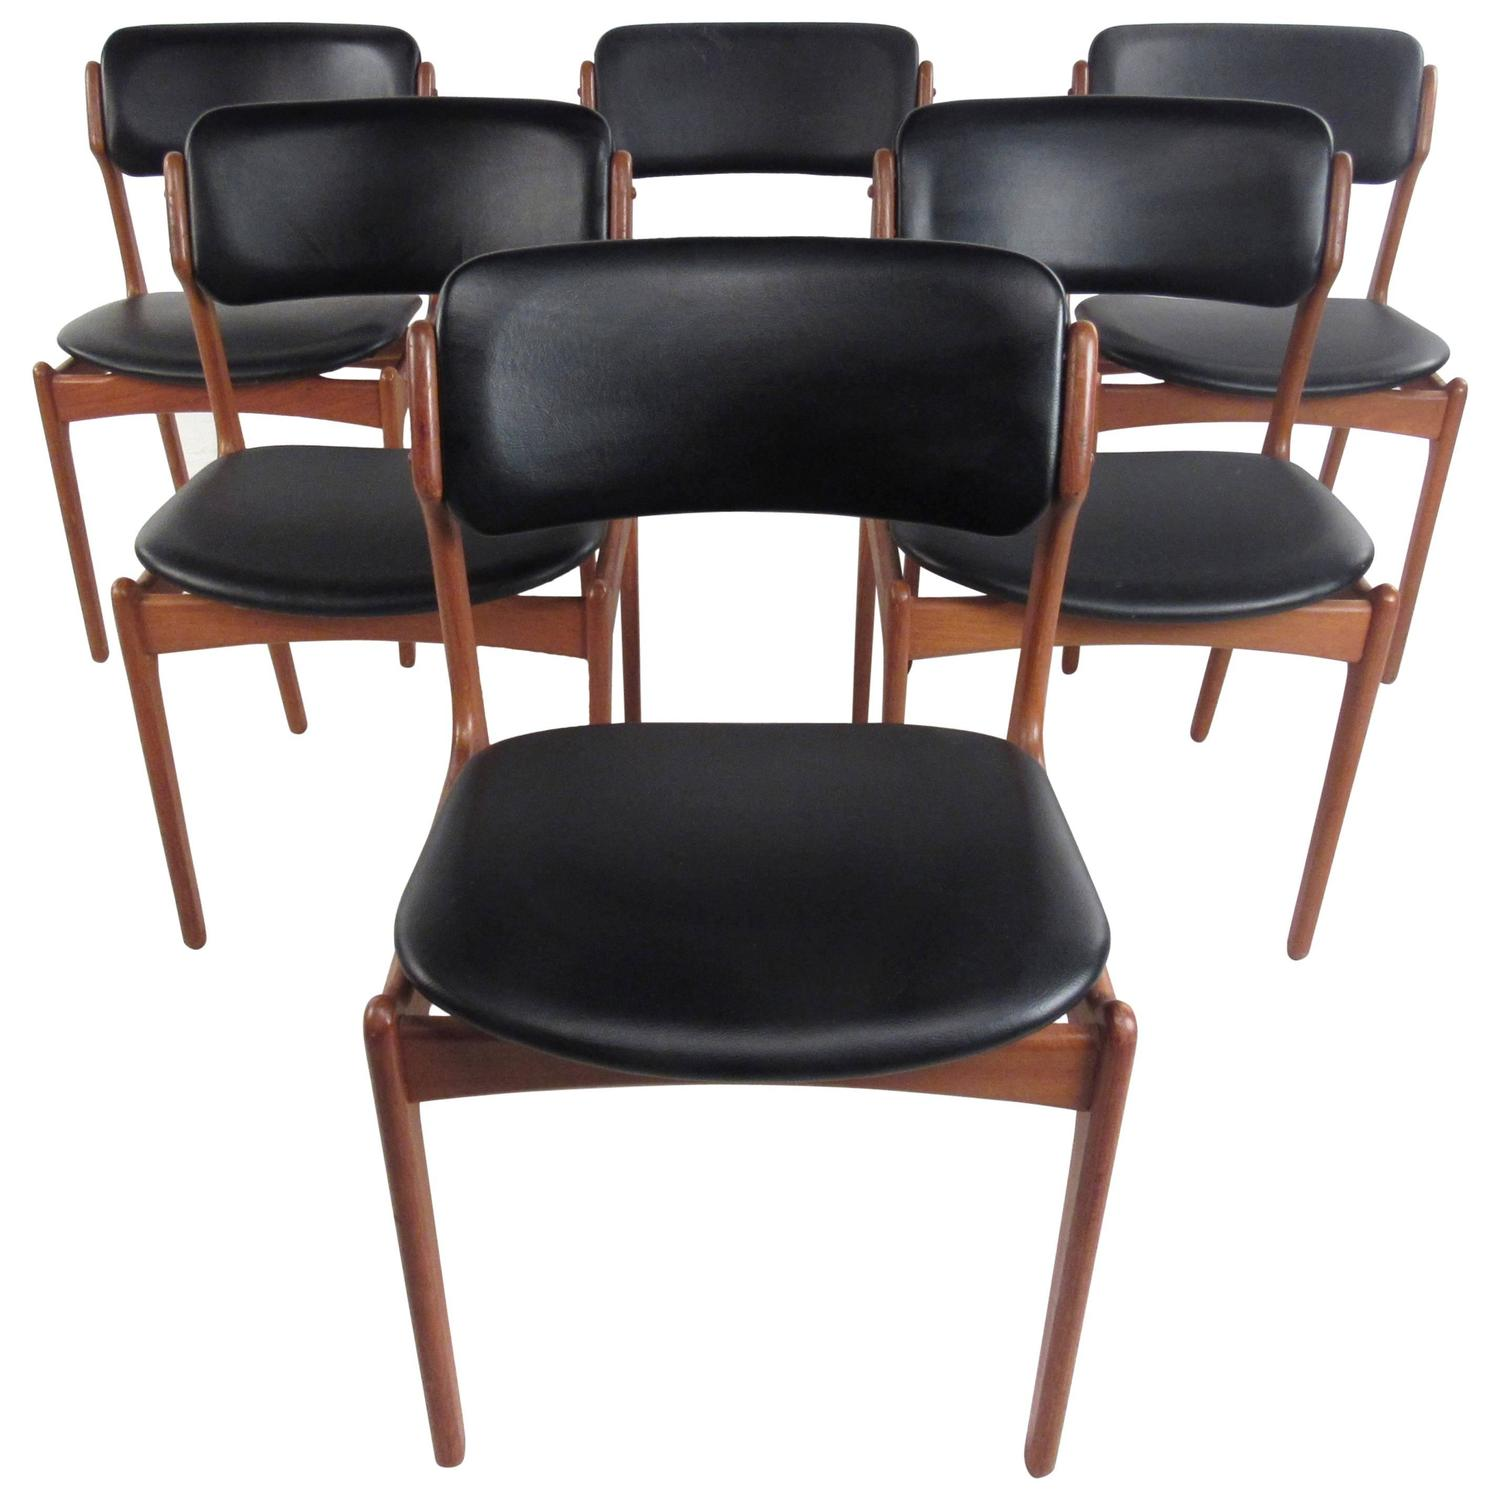 Vintage Mid Century Dining Rooms: Set Of Mid-Century Eric Buck Dining Chairs, Vintage Danish